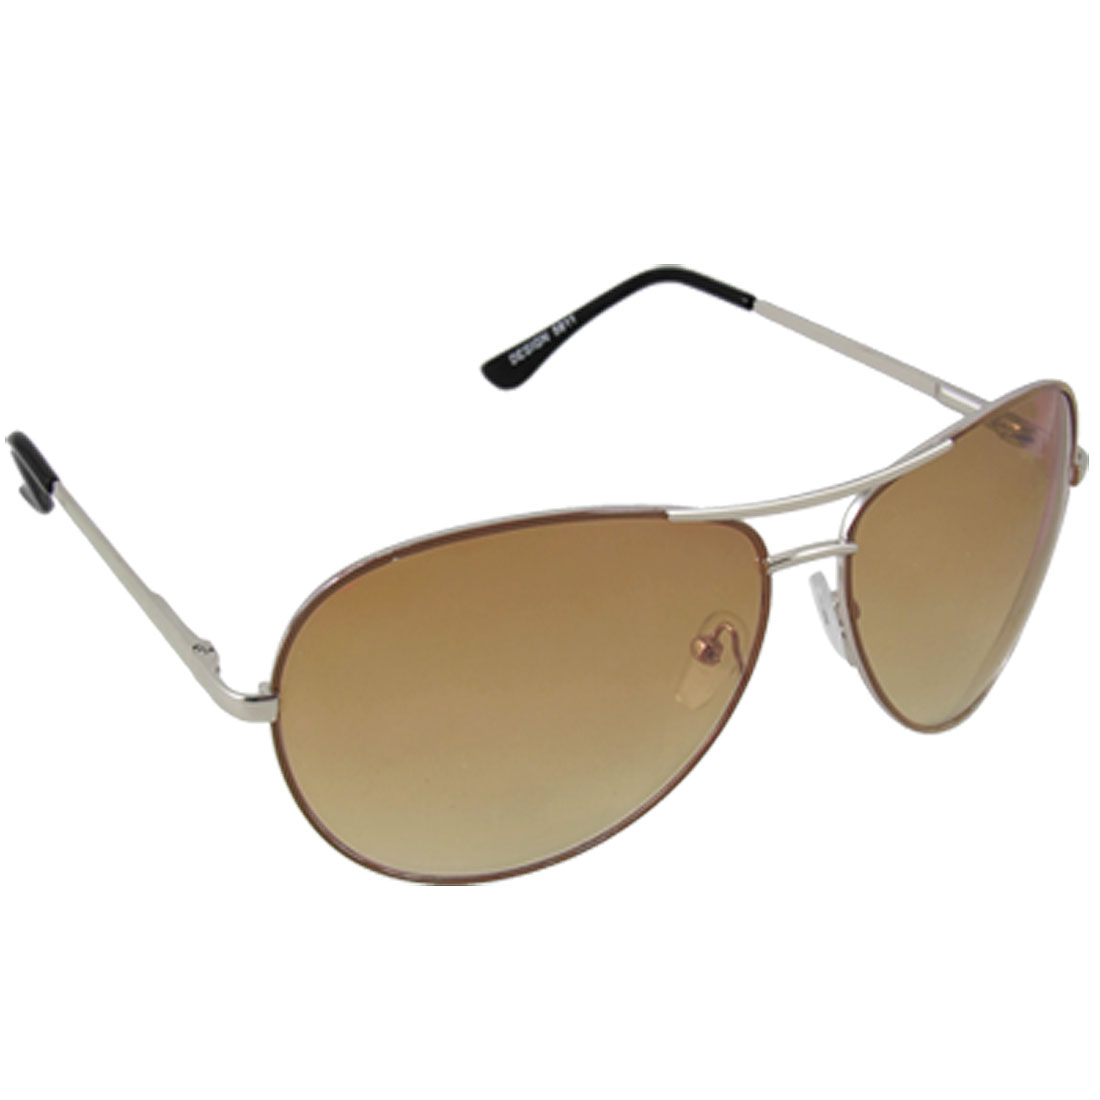 Men Pilot Style Oval Tan Lens Amaranth Frame Sunglasses